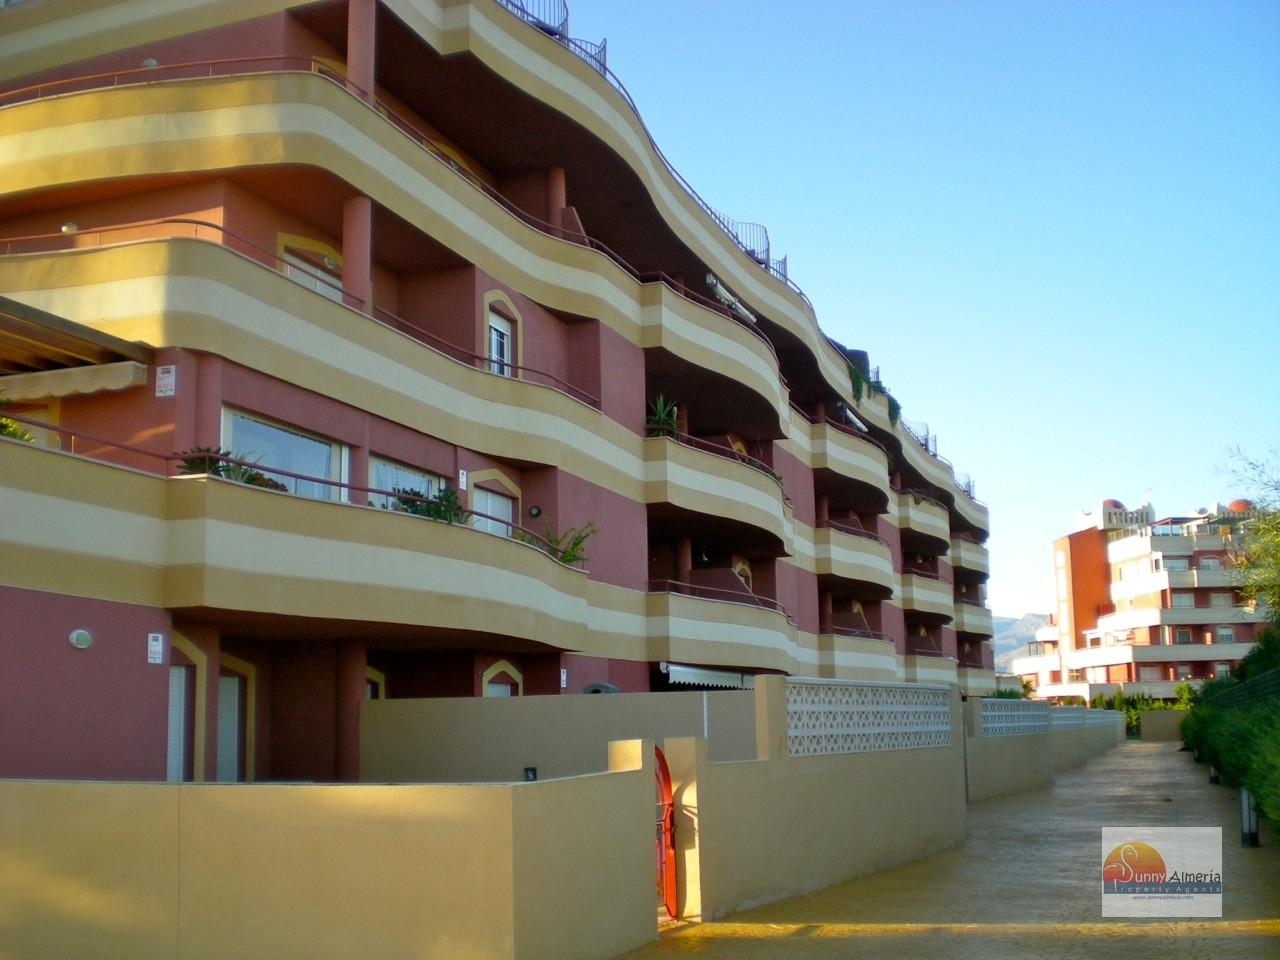 Luxury Flat for rent in Roquetas de Mar, 550 €/month